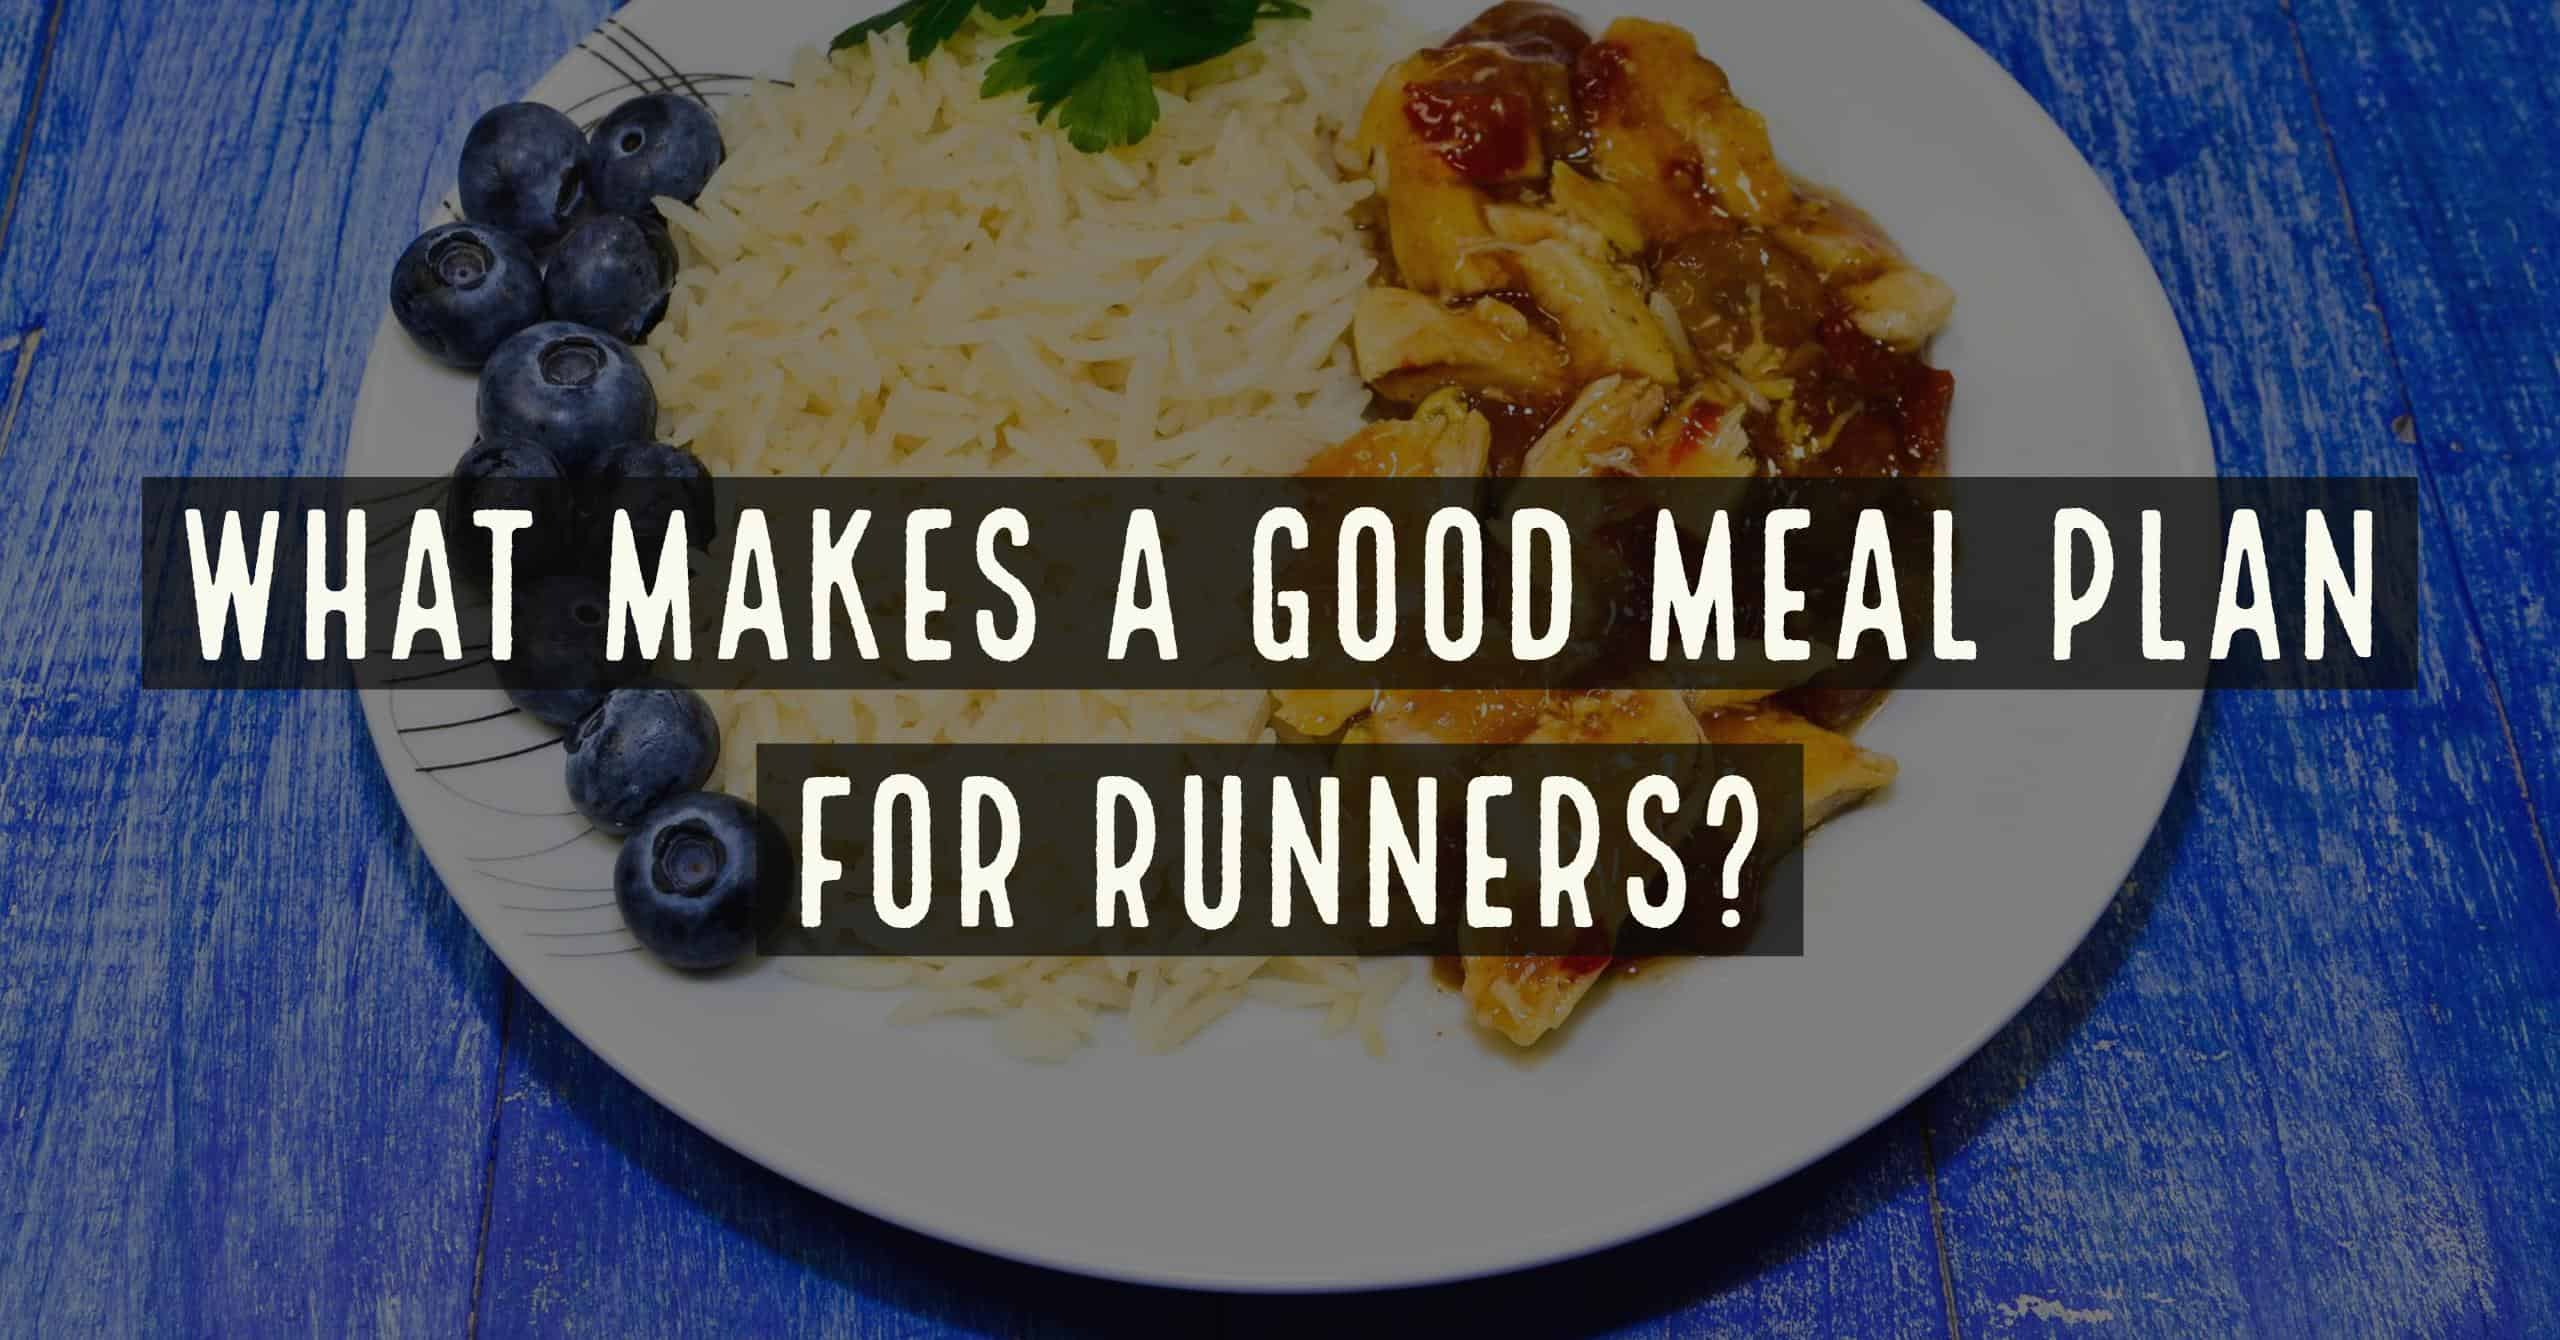 Most beginner runners struggle with finding the right balance of food vs. calories burned. That's why a Meal Plan is so important.What Makes a Good Meal Plan for Runners?